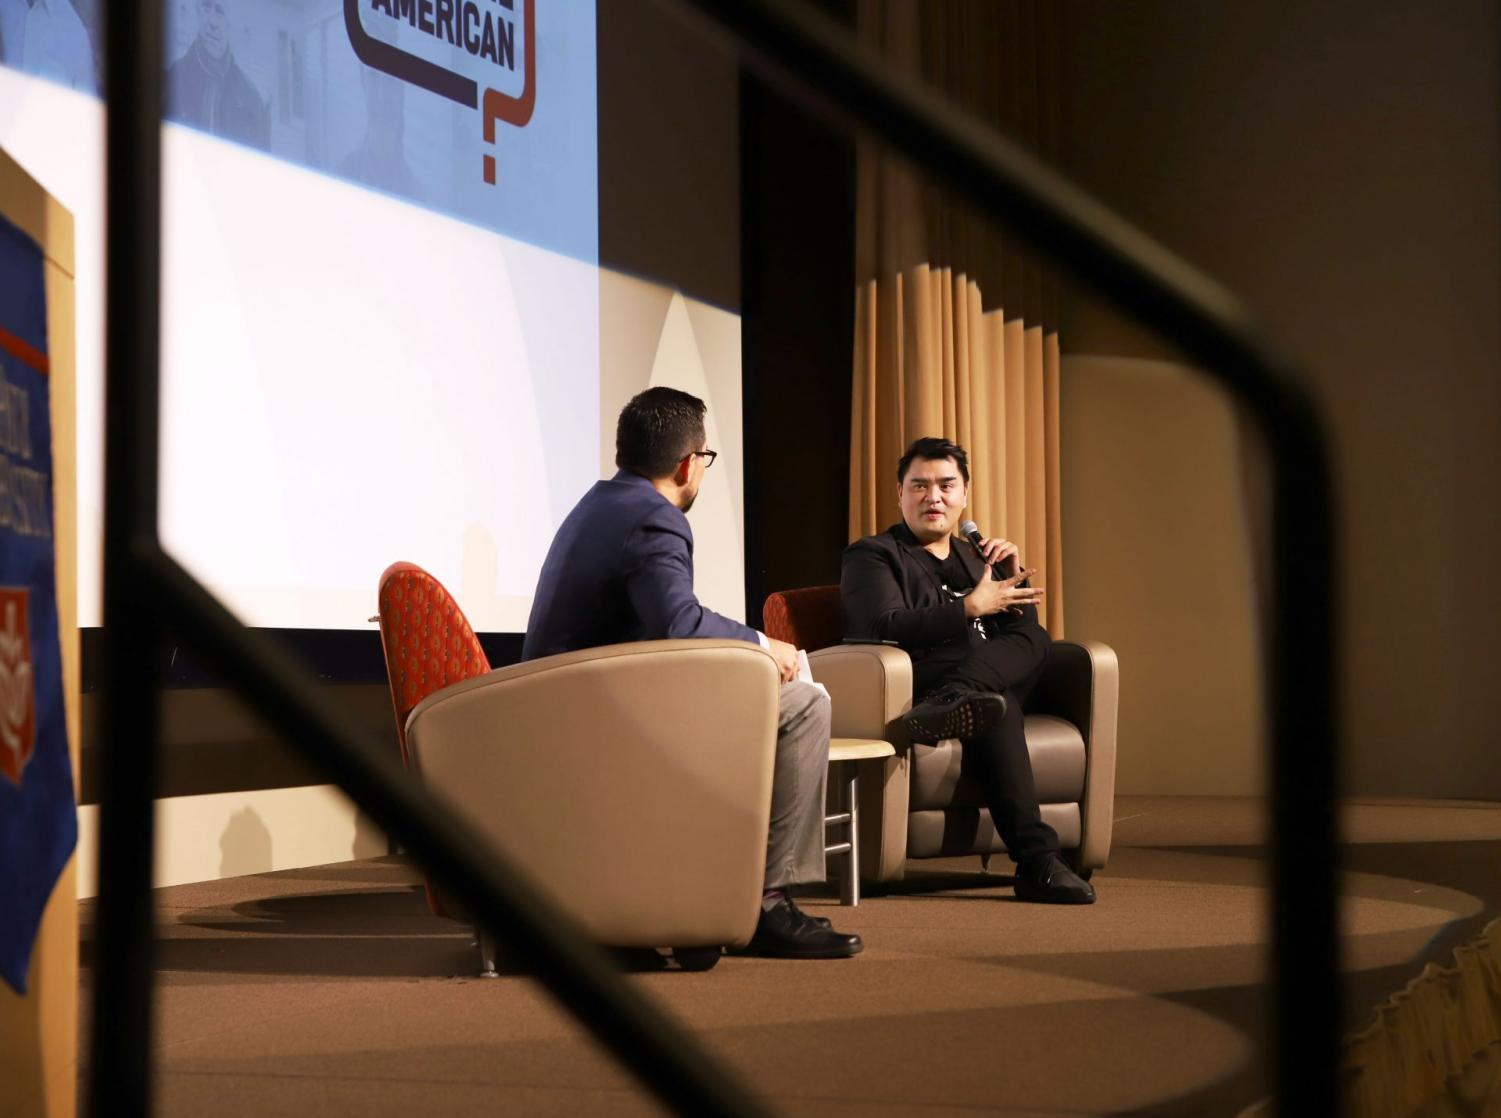 DePaul's third annual President's Lecture series featured Jose Antonio Vargas, an immigrant from the Phillippines and founder of the nonprofit Define America.